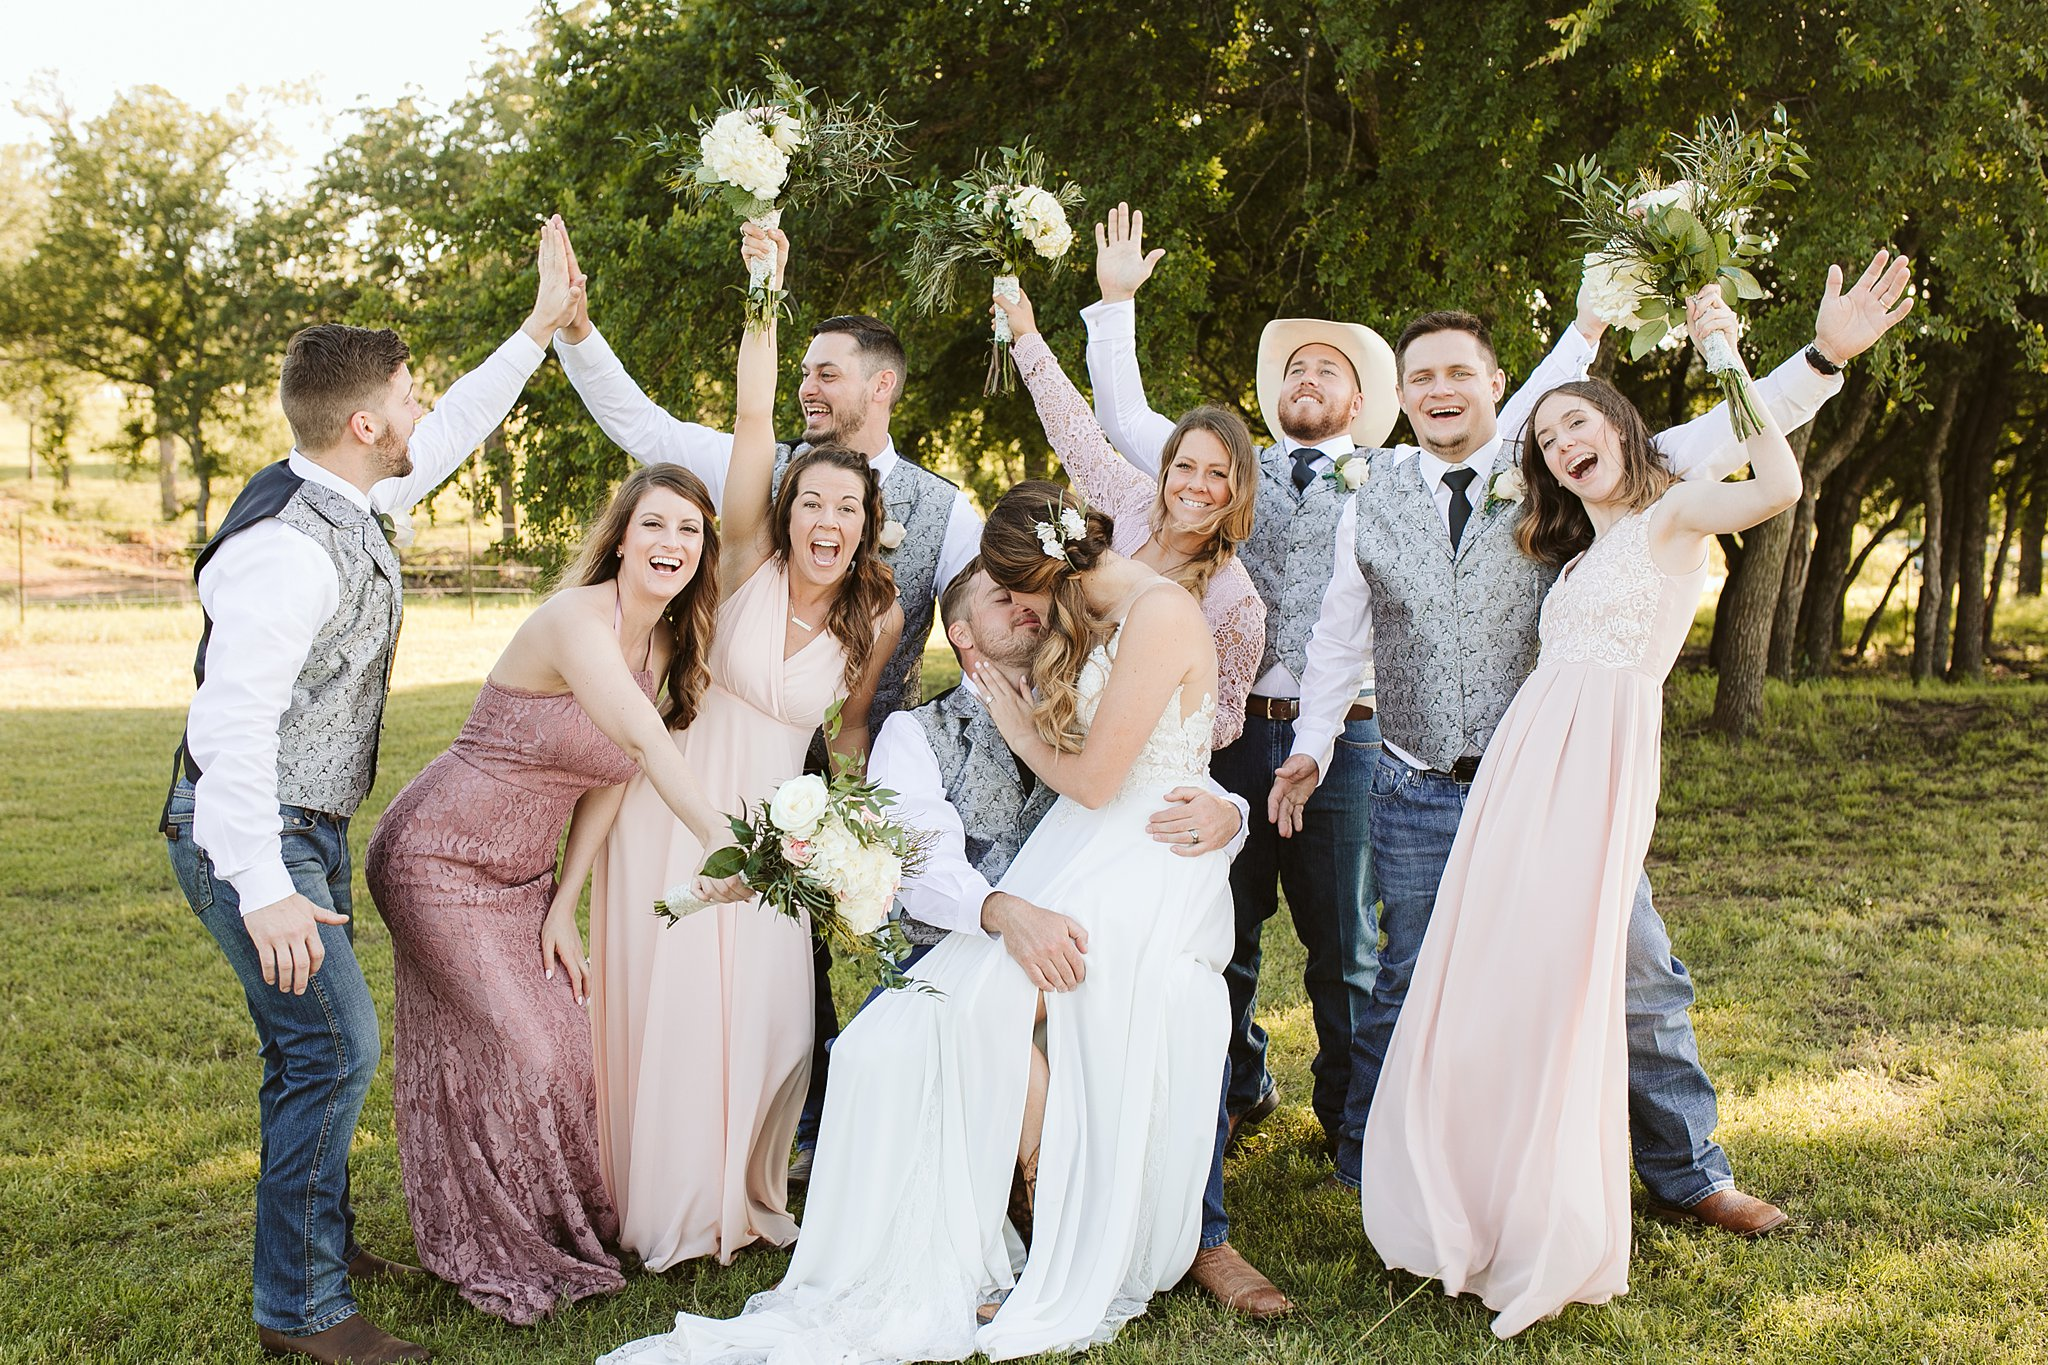 fun bride and groom and wedding party photos